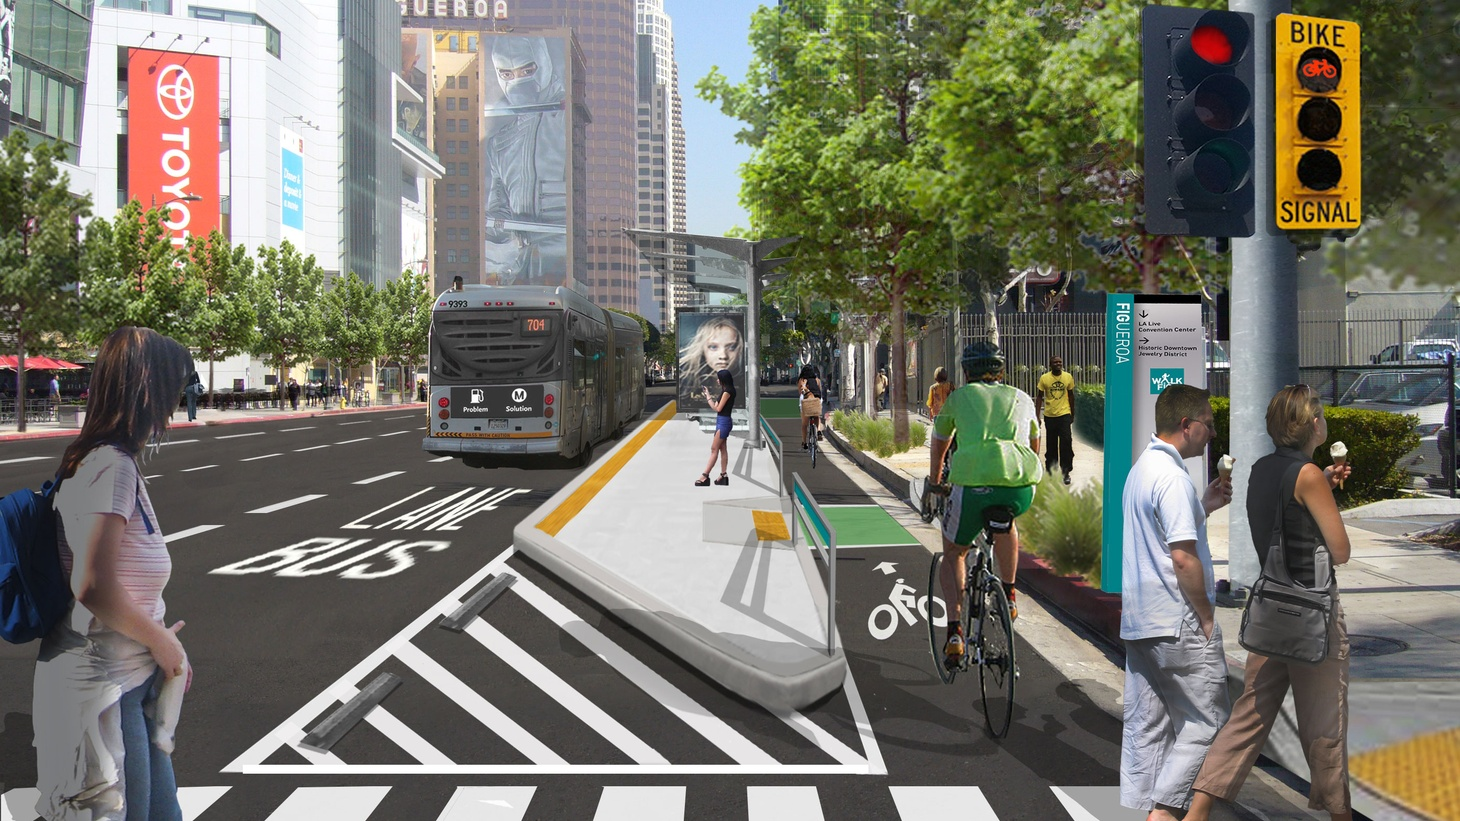 'Road diets' is the term for removing car traffic lanes in favor of bike lanes, parking, or larger sidewalks. Advocates say reducing car lanes on some busy streets means fewer accidents. But some drivers say the increased commuting time is unbearable and residential streets are now bearing the burden.